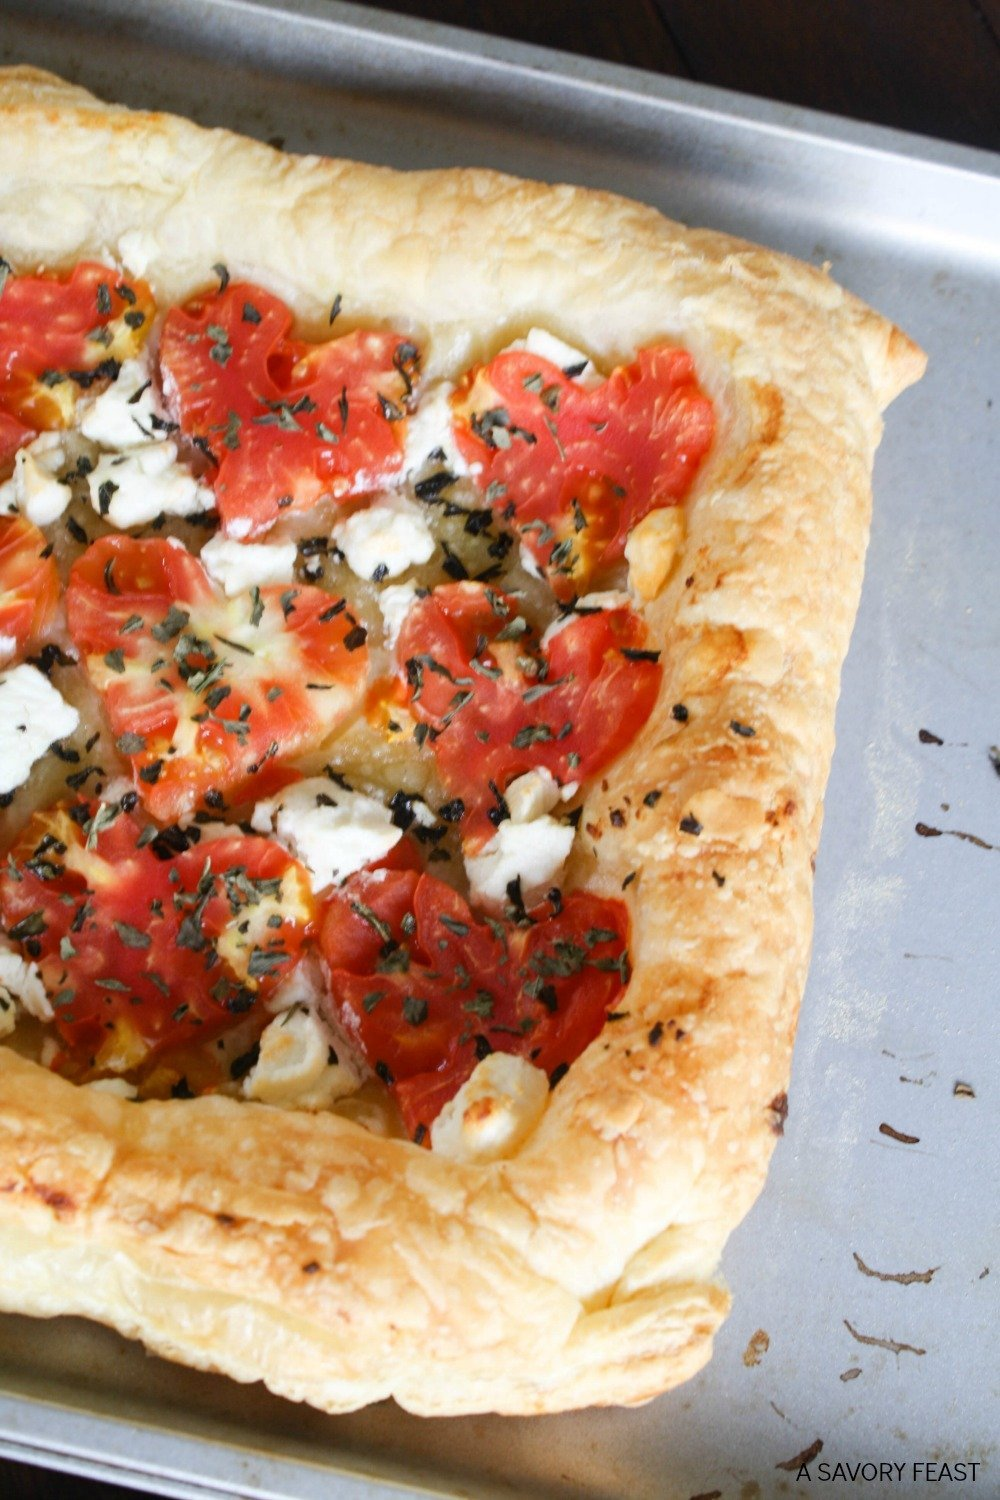 Celebrate the premiere of Alice Through the Looking Glass with this fancy Queen of Hearts Tomato Tart!